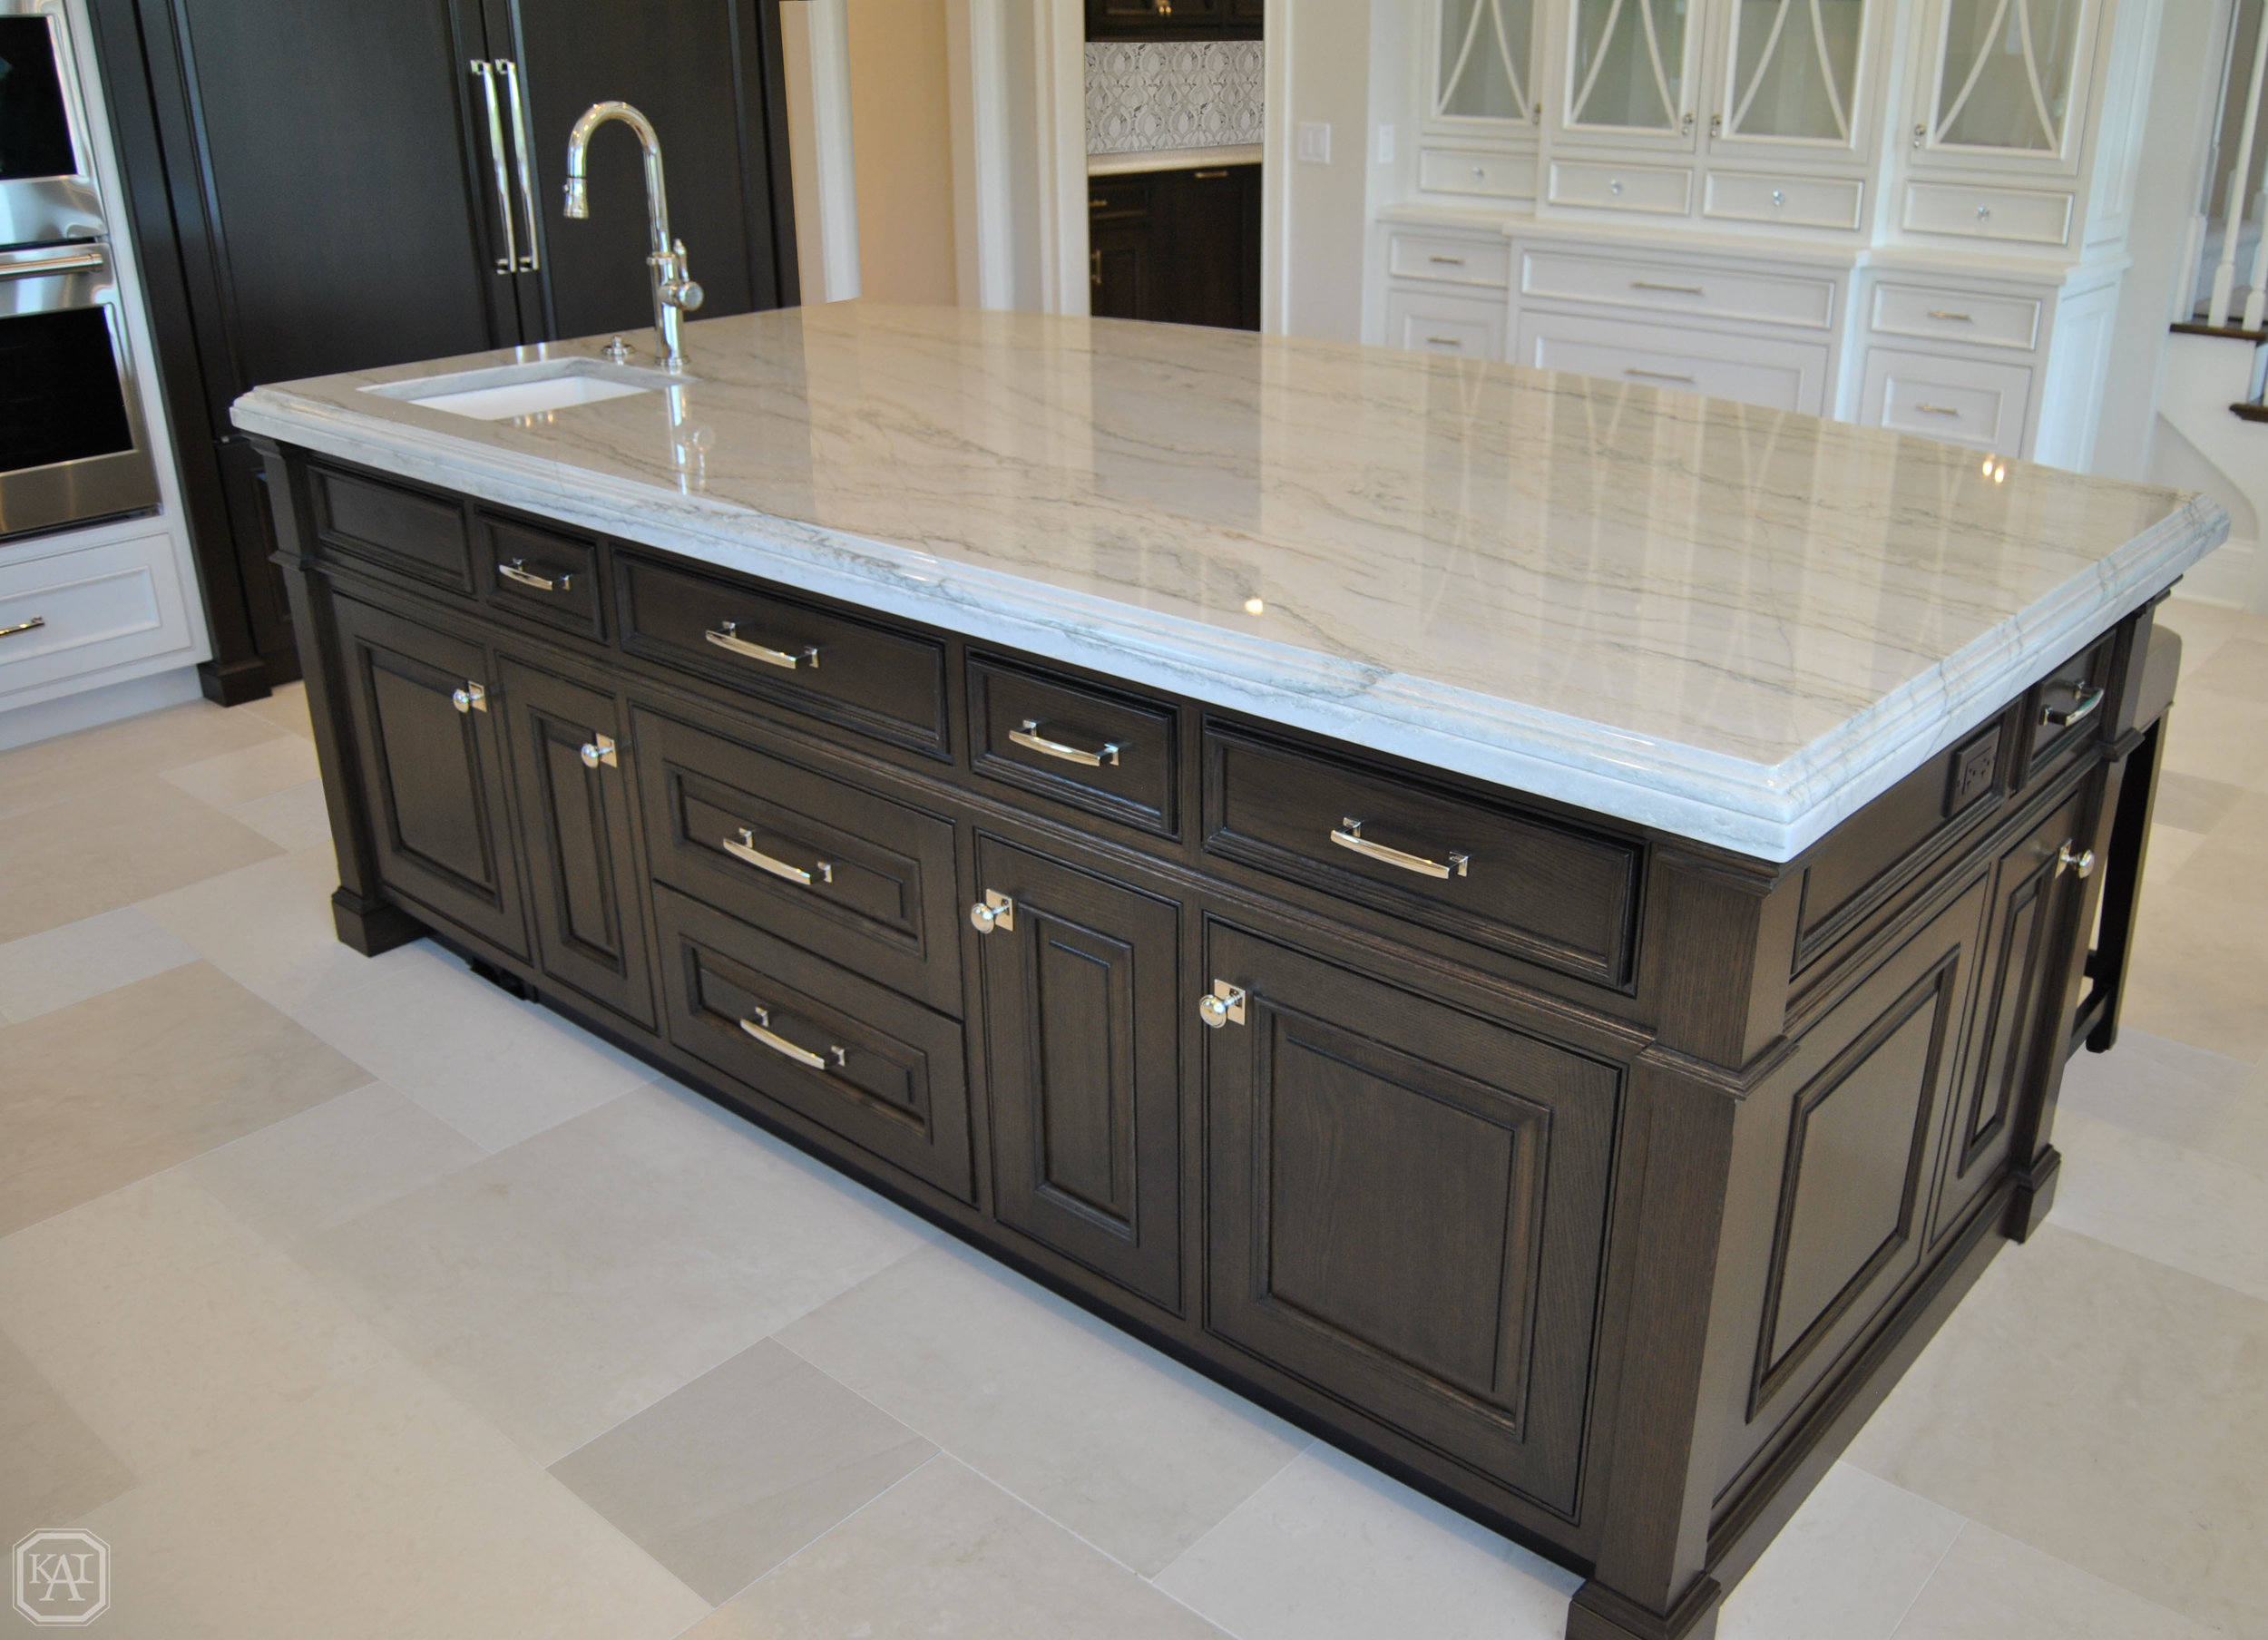 ZITELLA KITCHEN ISLAND_DSC_0292_EDIT.jpg